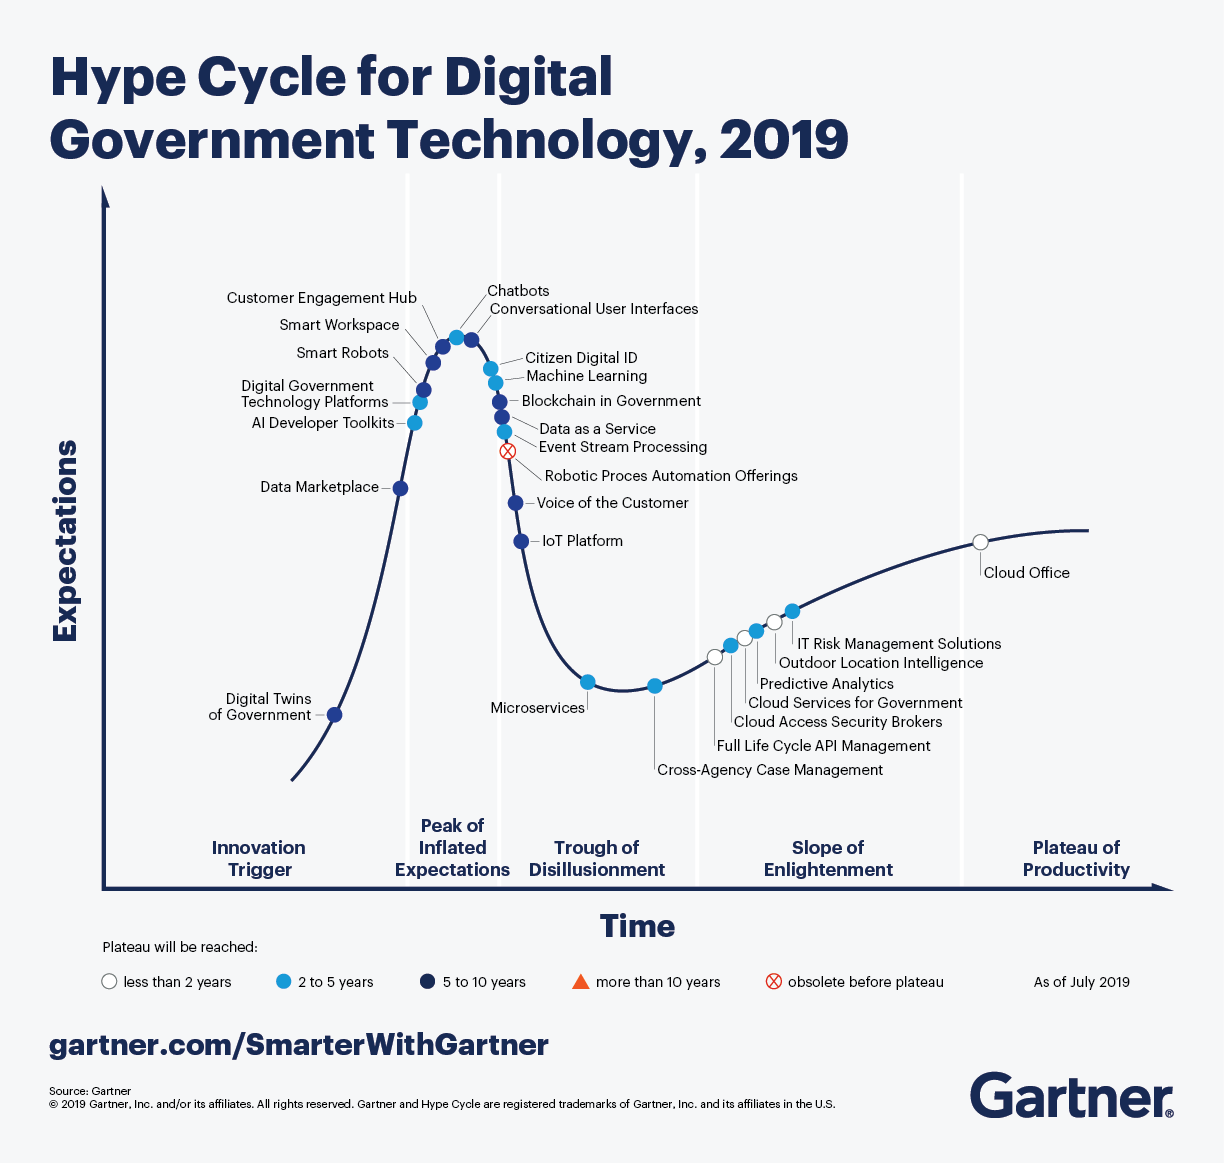 The Gartner Hype Cycle for Digital Government Technology